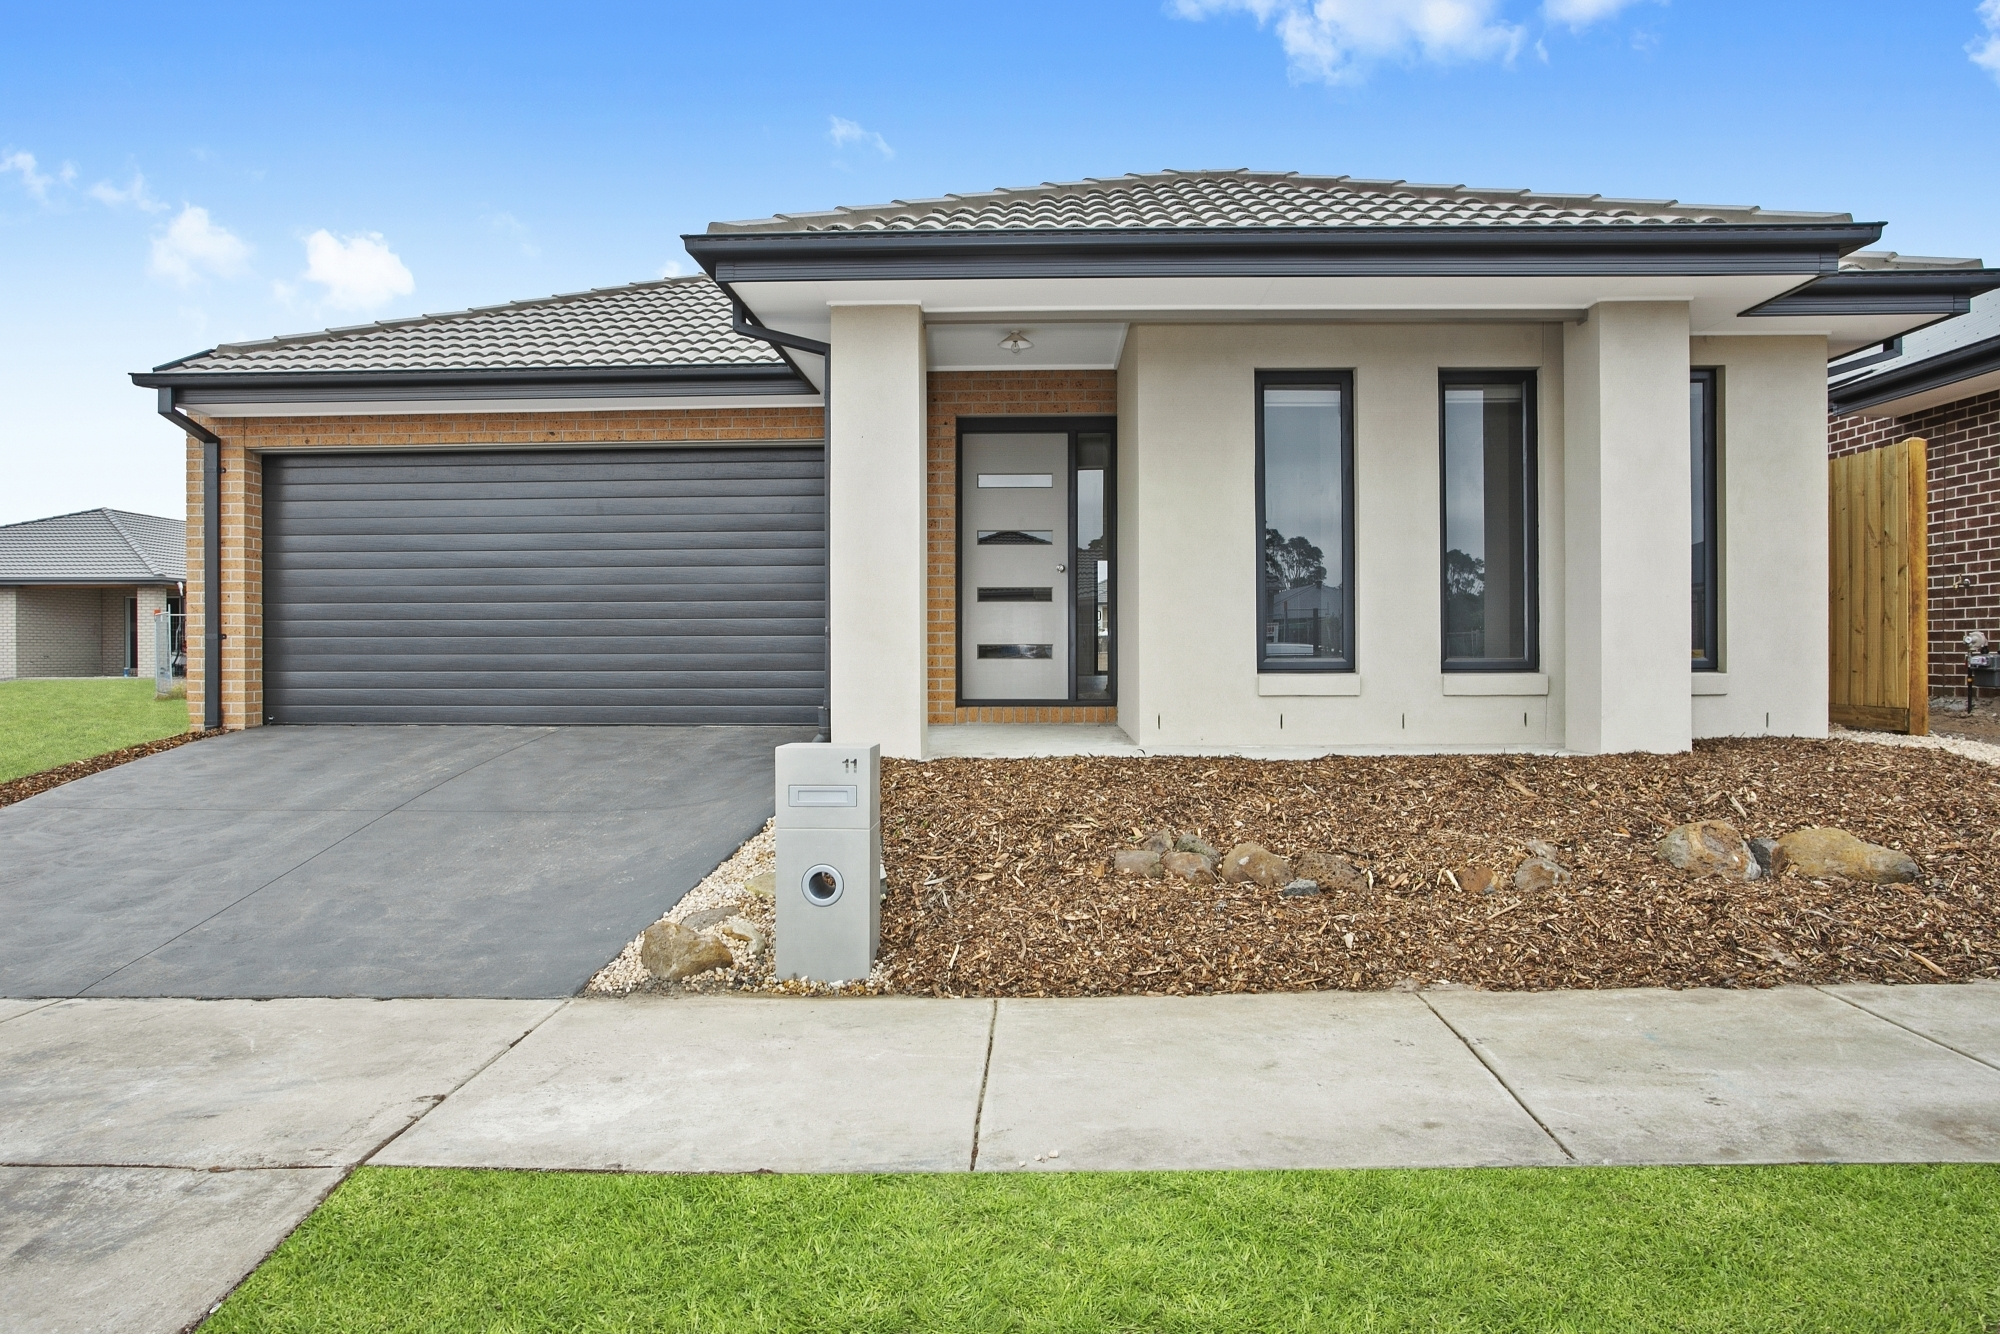 11 McCormack Avenue, Armstrong Creek VIC 3217